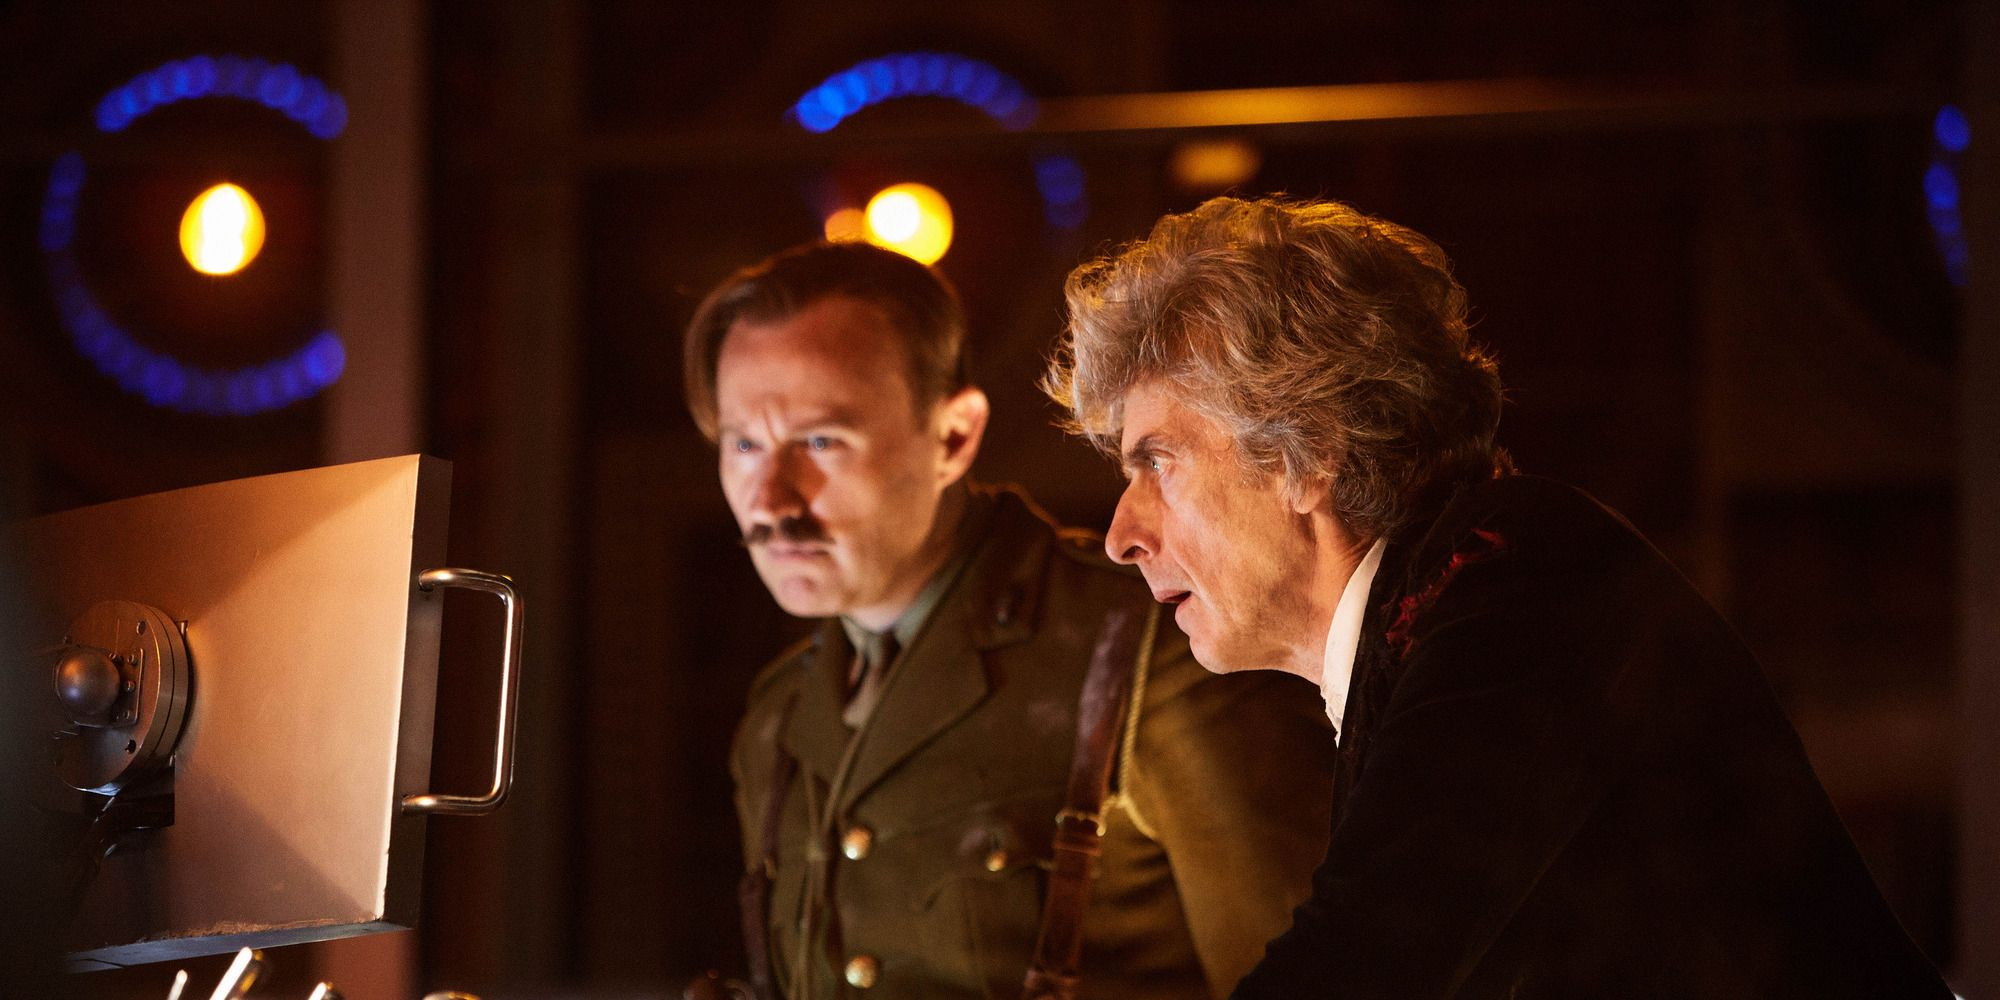 'Doctor Who' Christmas special, 'Twice Upon a Time'